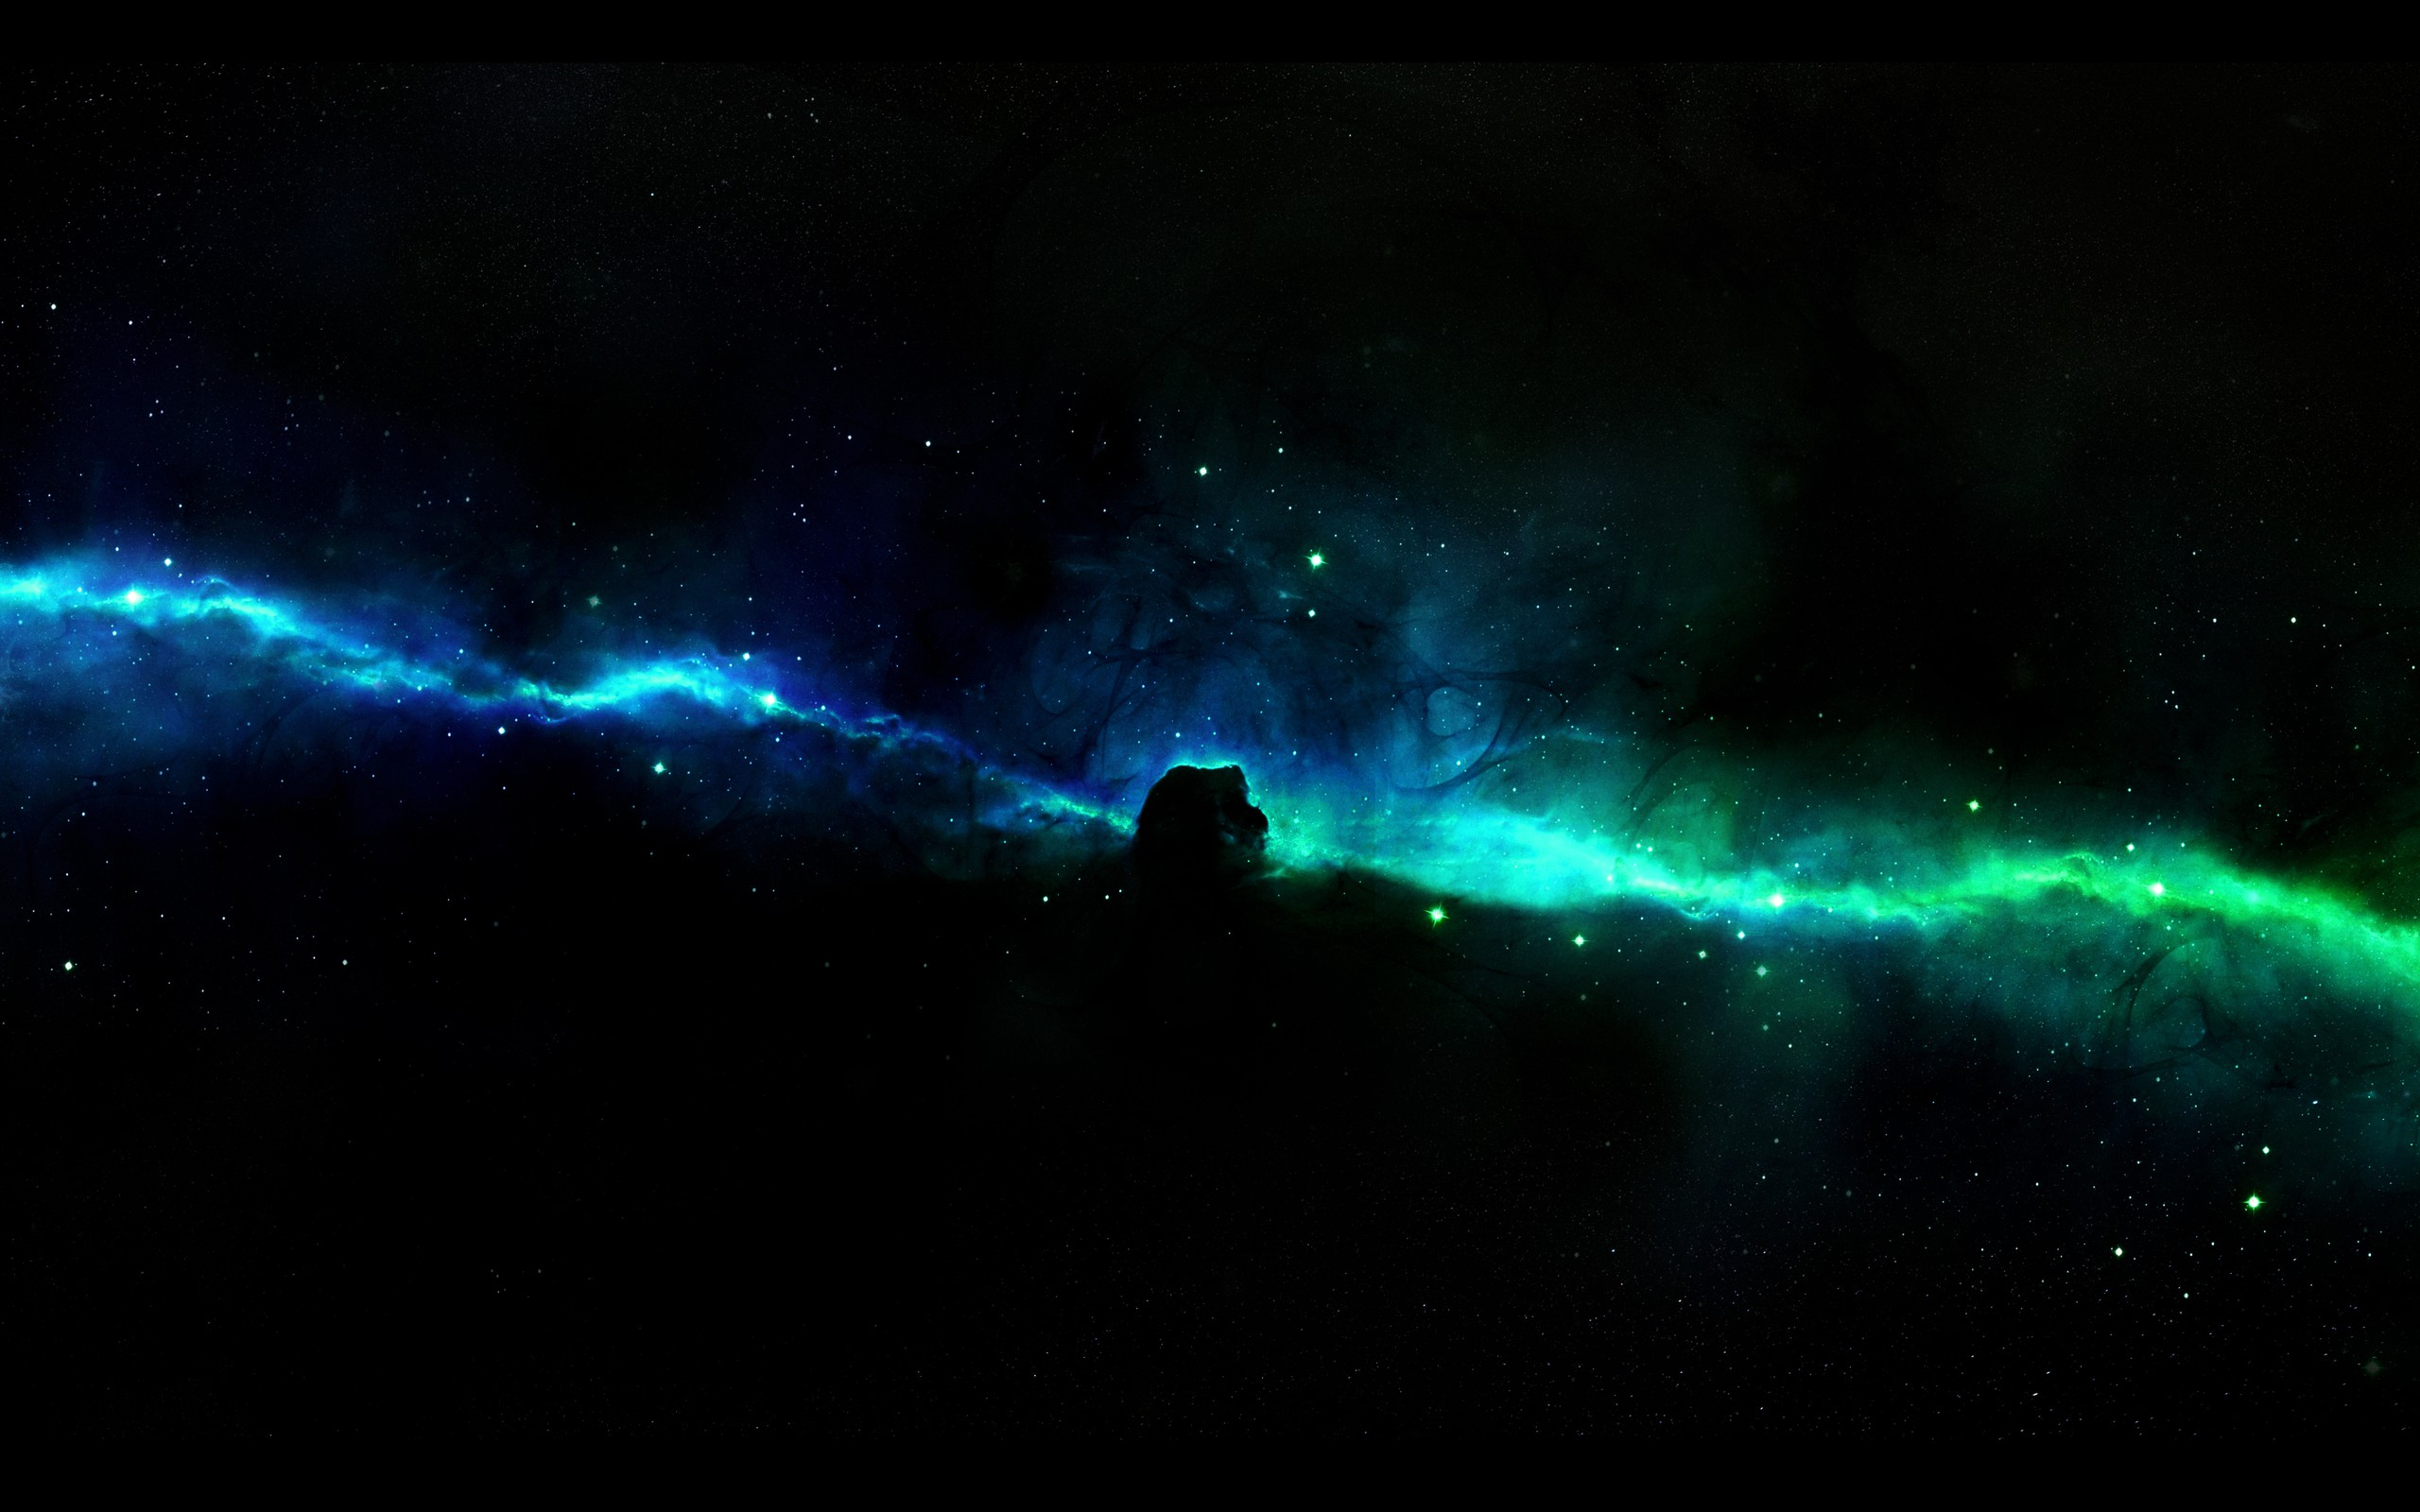 Hd Space Wallpapers 4305 2560x1600 Px Hdwallsource Com